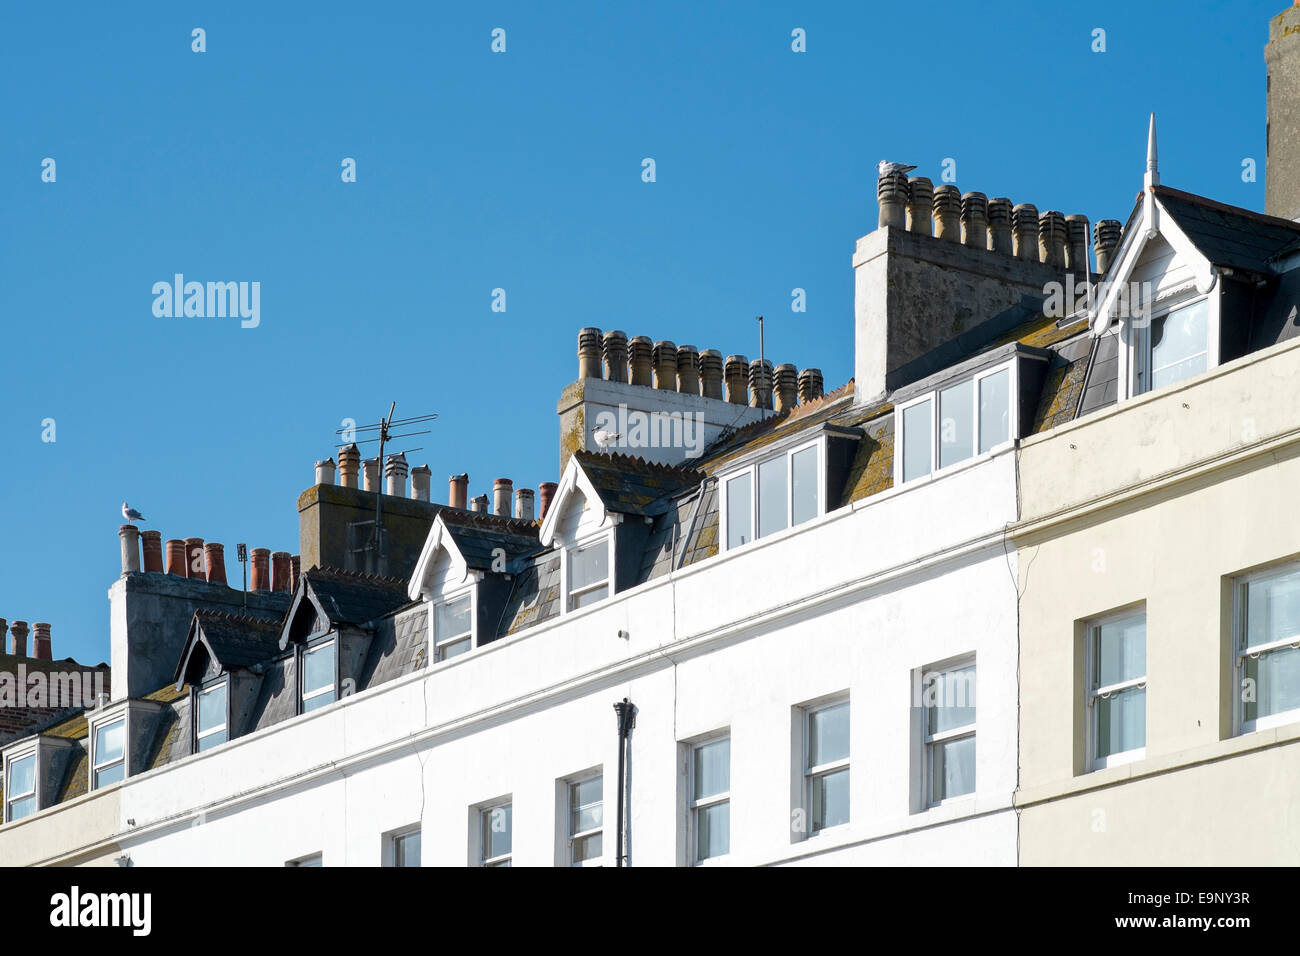 Rows of chimneys on top of tall houses in Weymouth Dorset UK - Stock Image